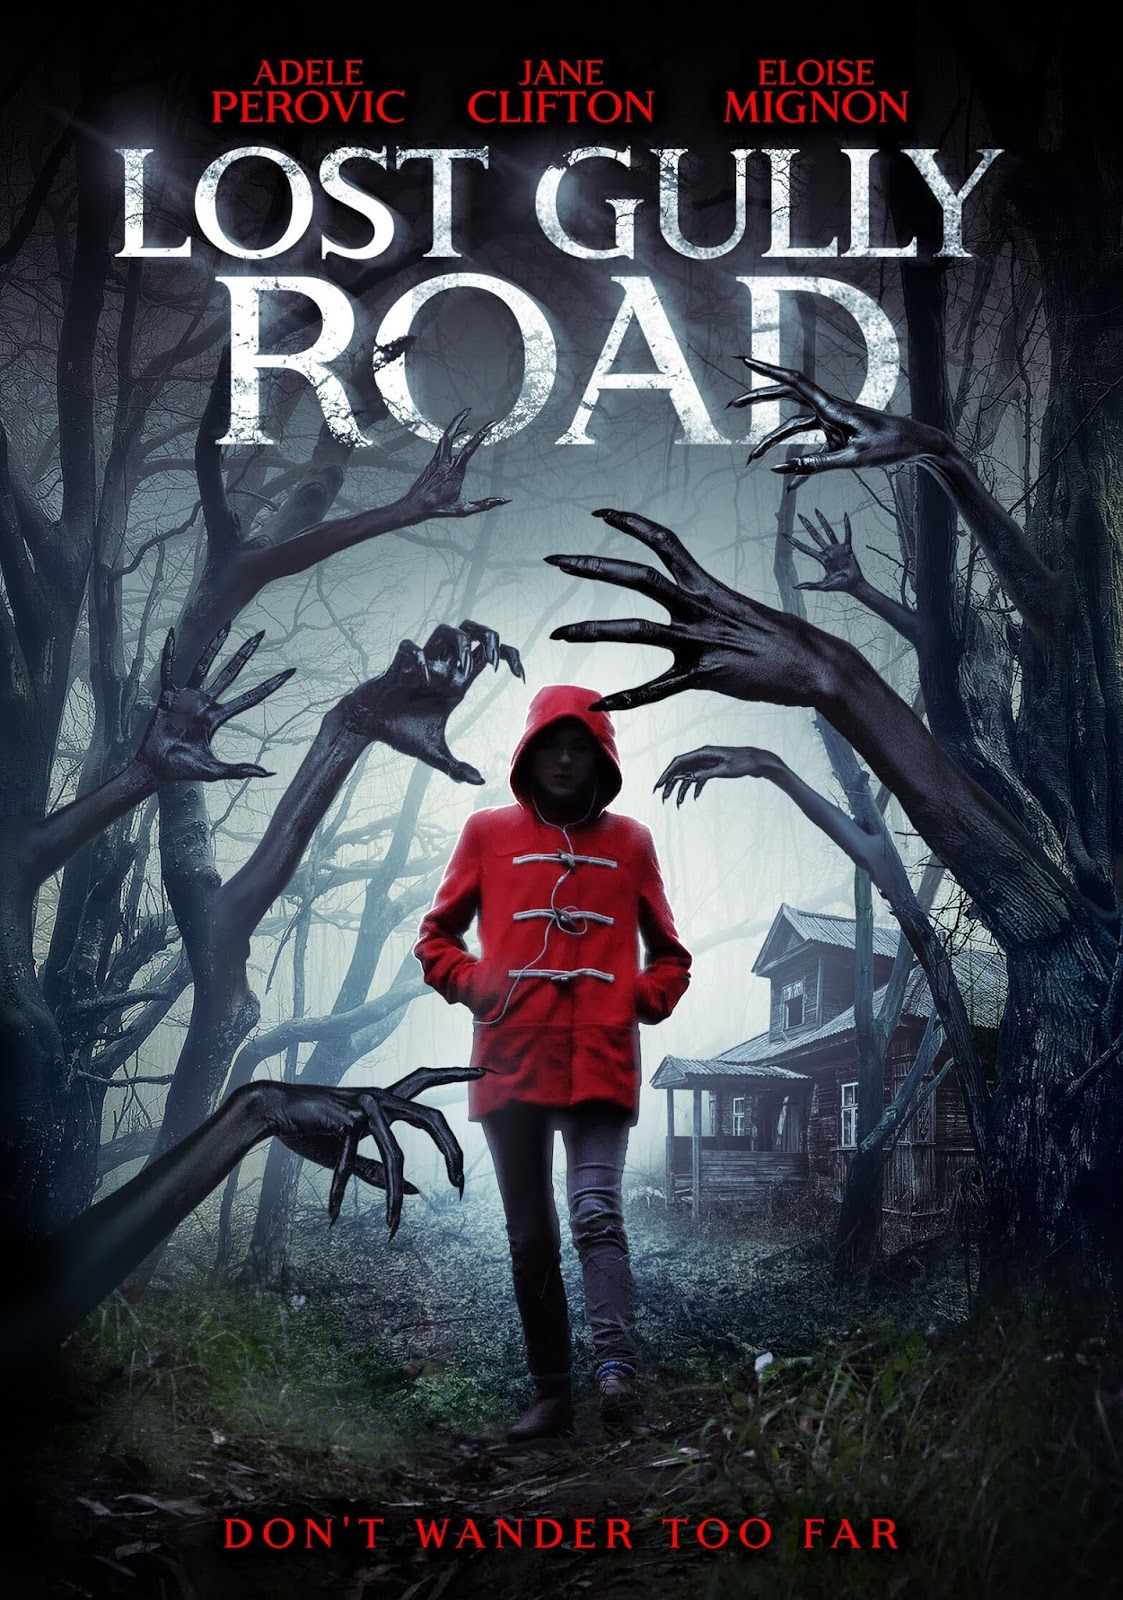 Lost Gully Road (2017) | Adele Perovic is Lucy | Horror Film Review